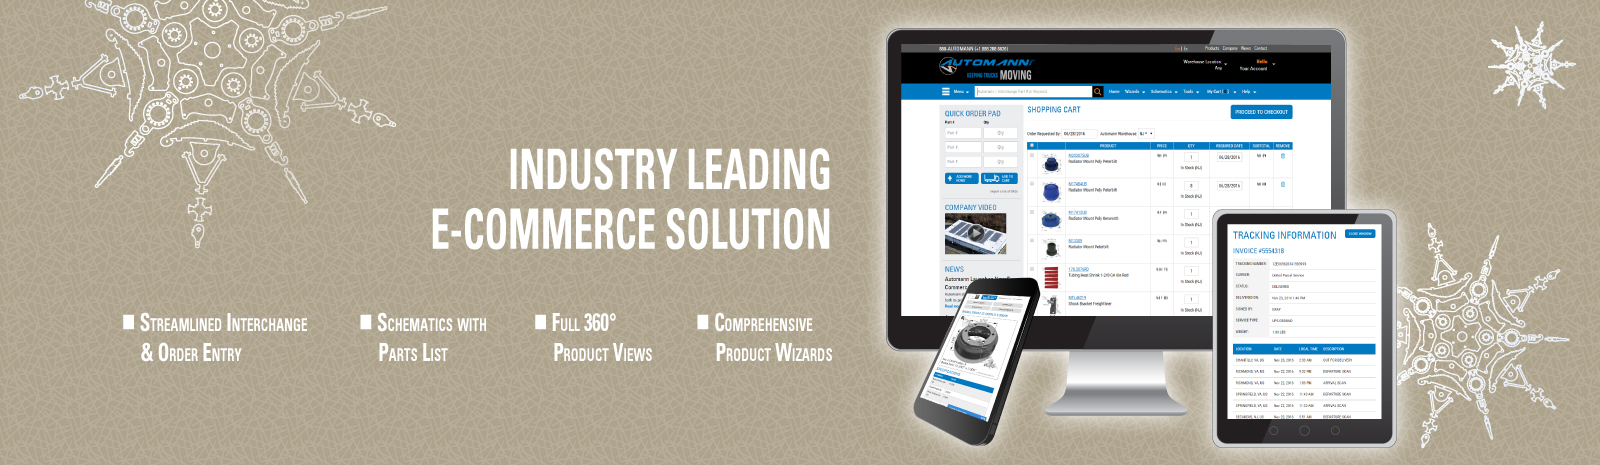 INDUSTRY LEADING E-COMMERCE SOLUTION